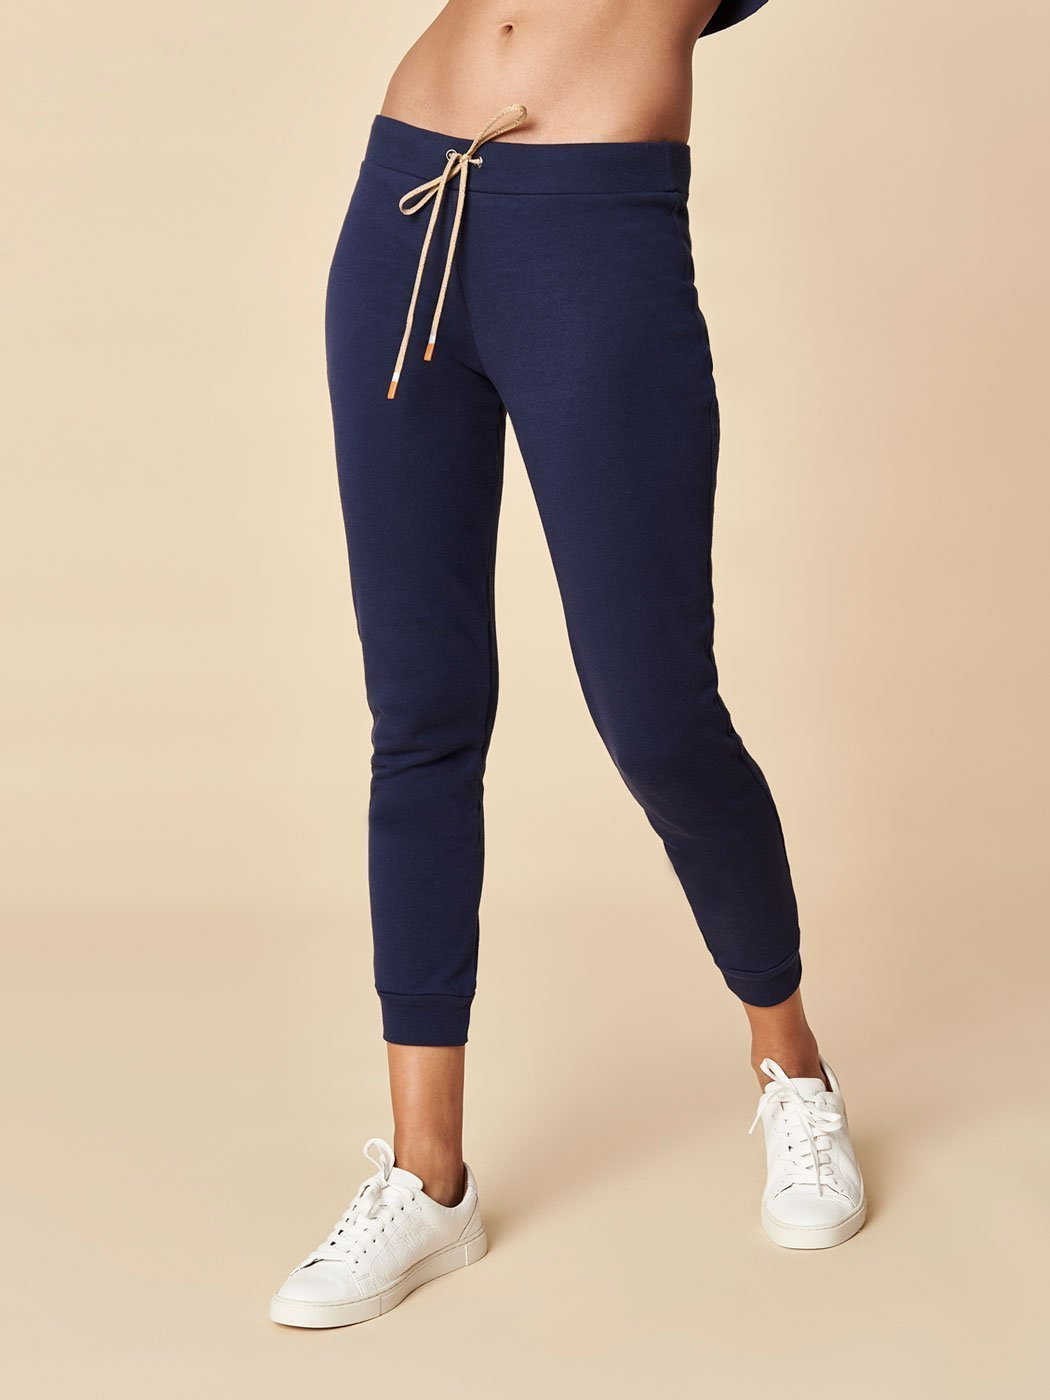 Off Duty Slim Jogger Navy, Final Sale